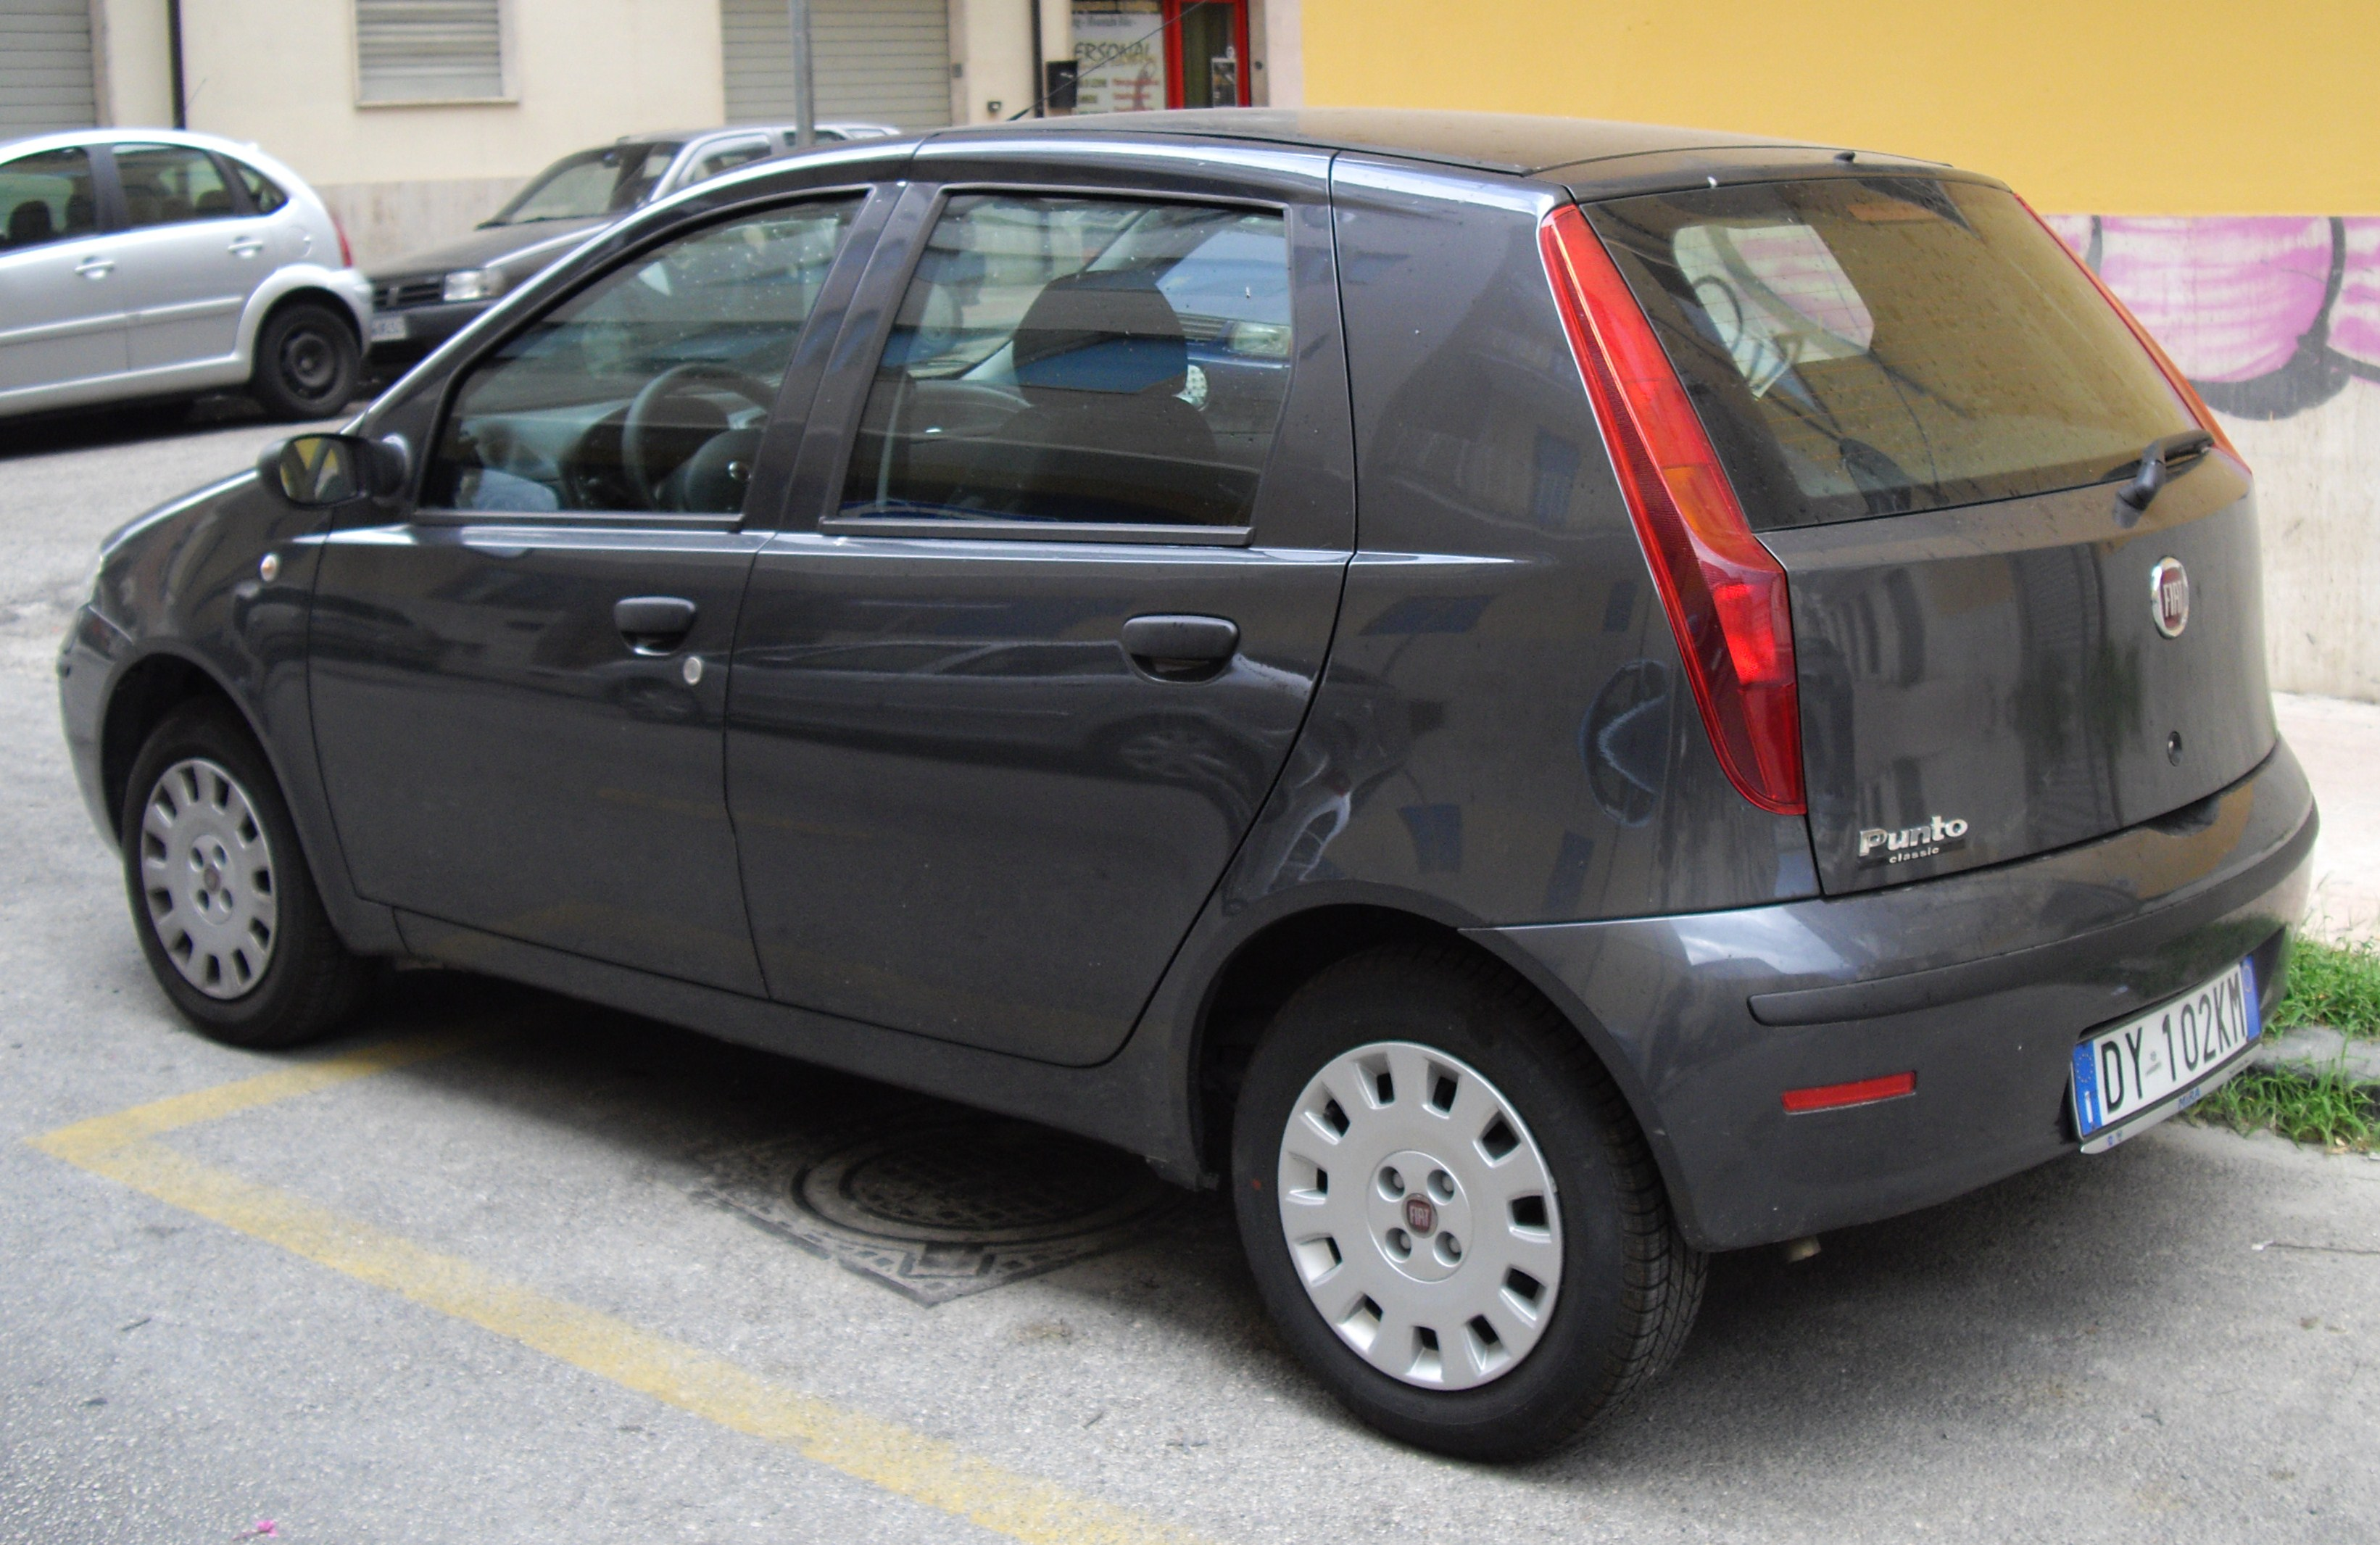 http://upload.wikimedia.org/wikipedia/commons/f/ff/2009_Fiat_Punto_Classic_188_rear.JPG